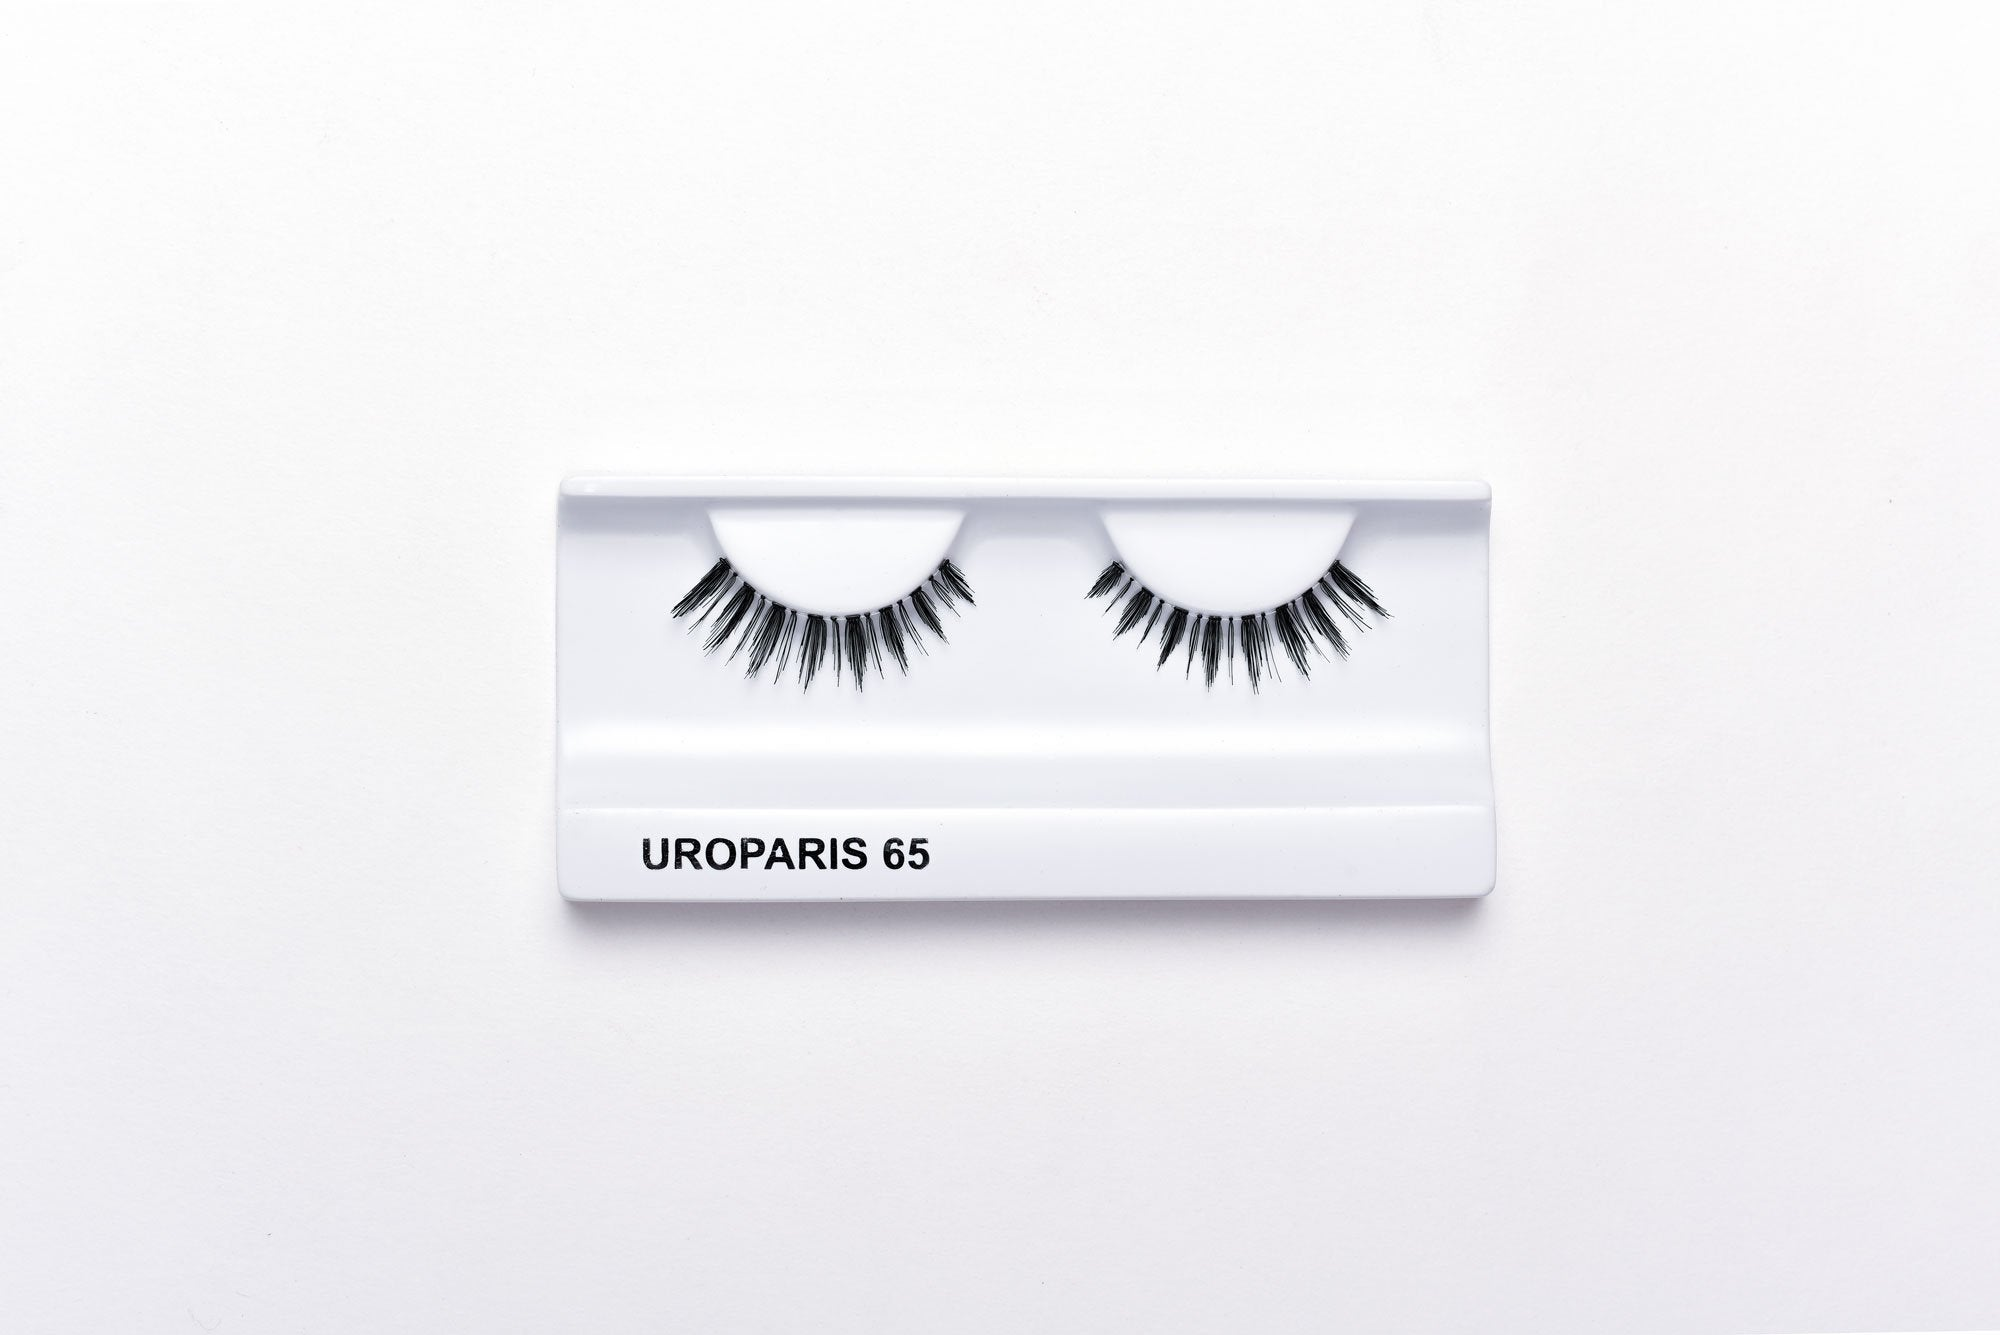 Uroparis Eyelashes 65